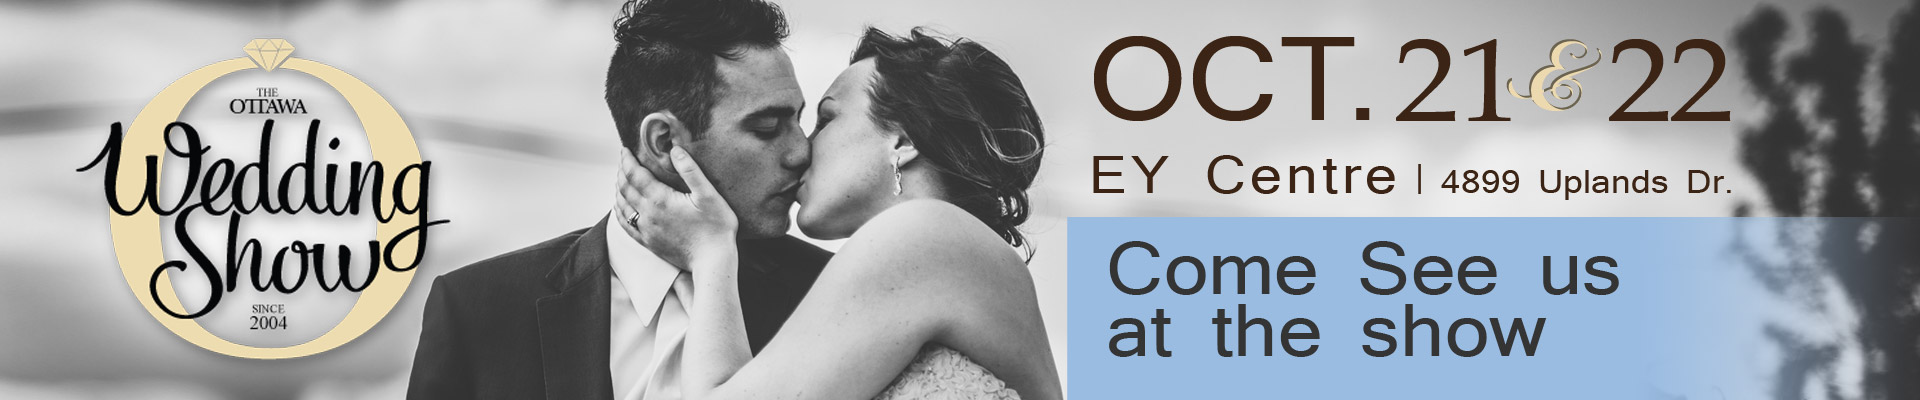 Come see us at the Ottawa Wedding Show, Oct. 21 & 22 - EY Centre 4899 Uplands Drive, Ottawa